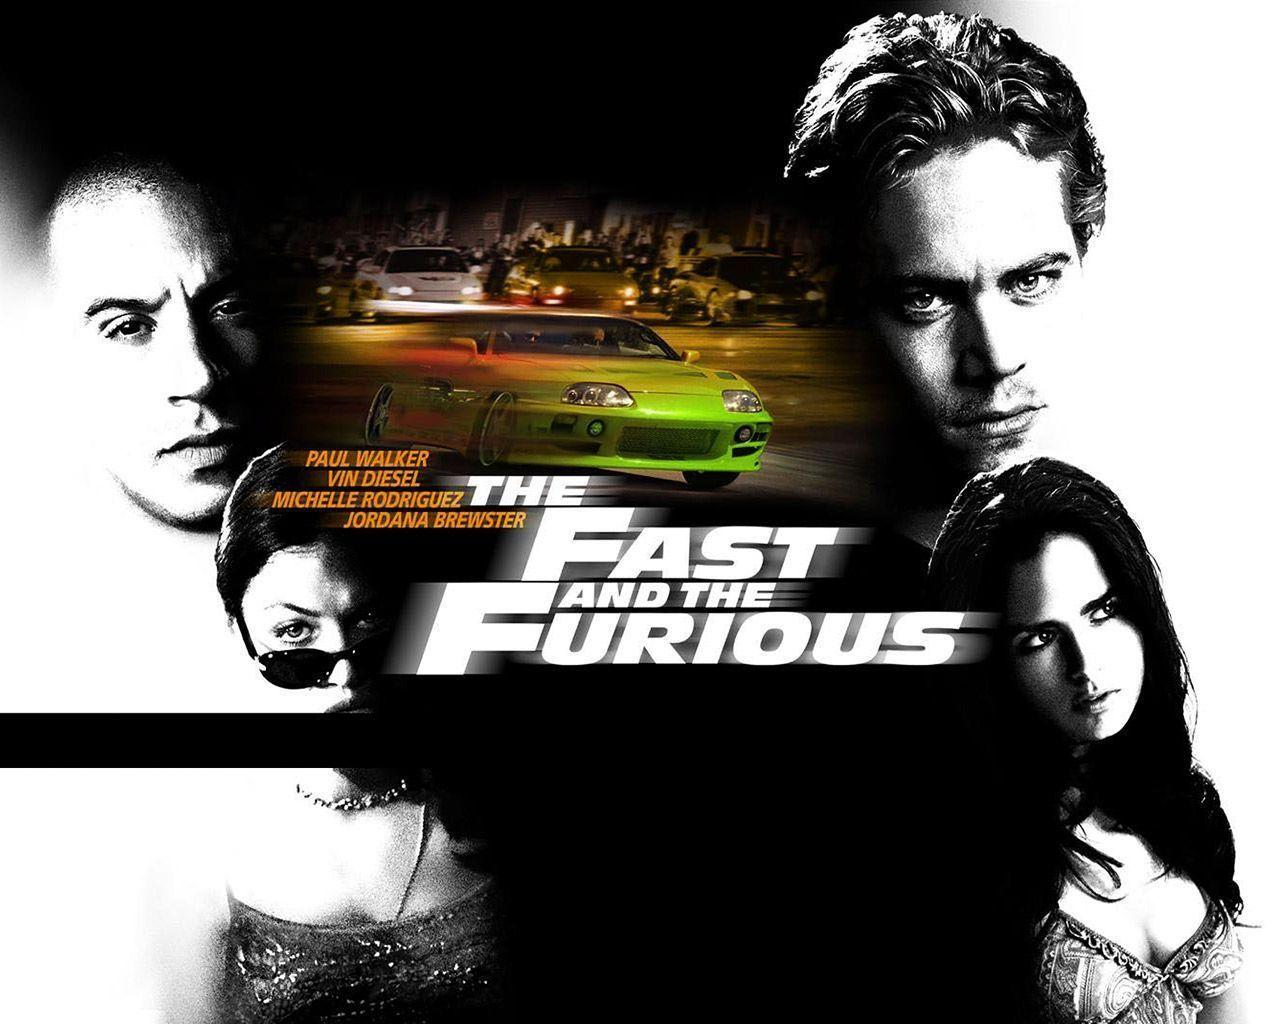 Fast And Furious 1 Wallpapers Top Free Fast And Furious 1